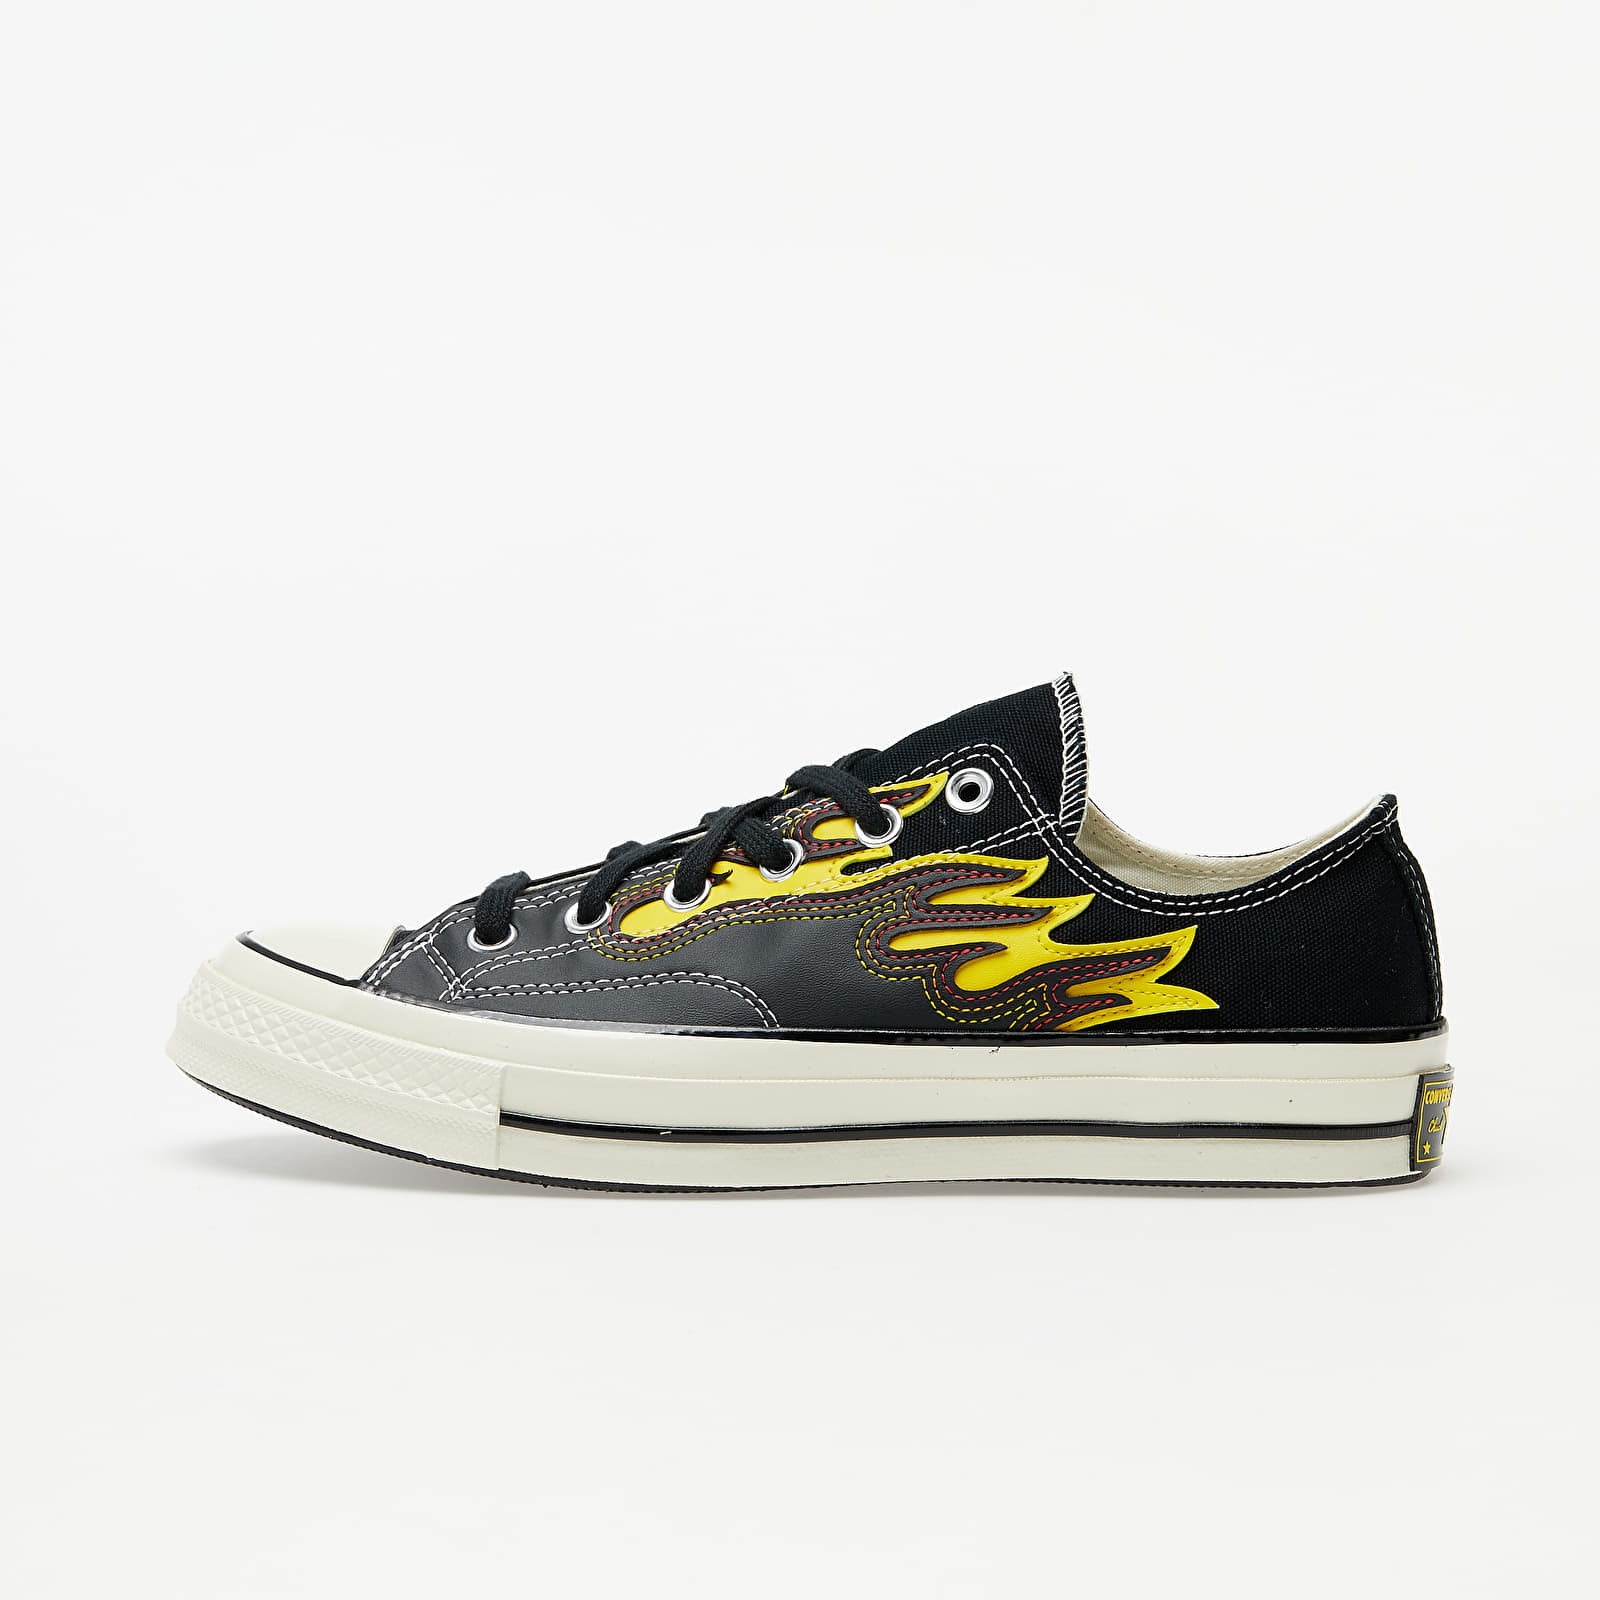 Chaussures et baskets homme Converse Chuck Taylor All Star 70 Ox Black/ Speed Yellow/ Egret